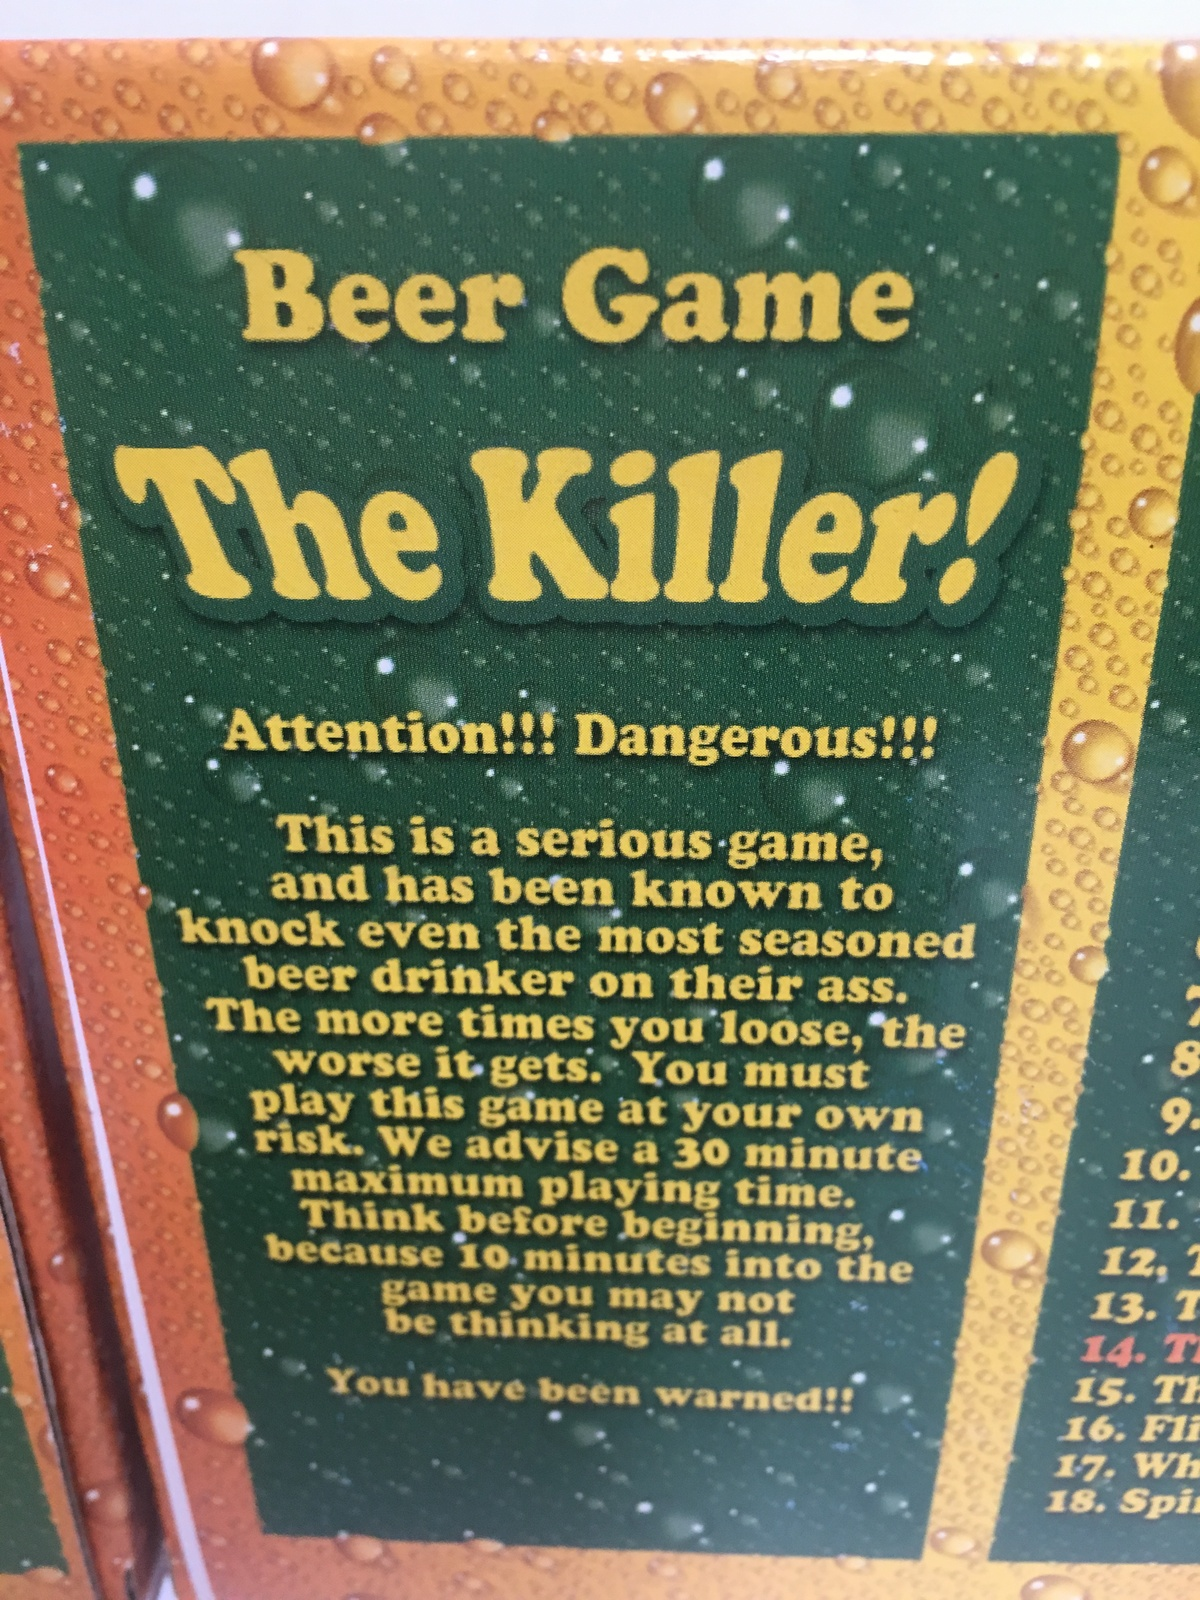 Beer Games The Striptease and The Killer #9 #14 ADULTS Drinking Games image 9